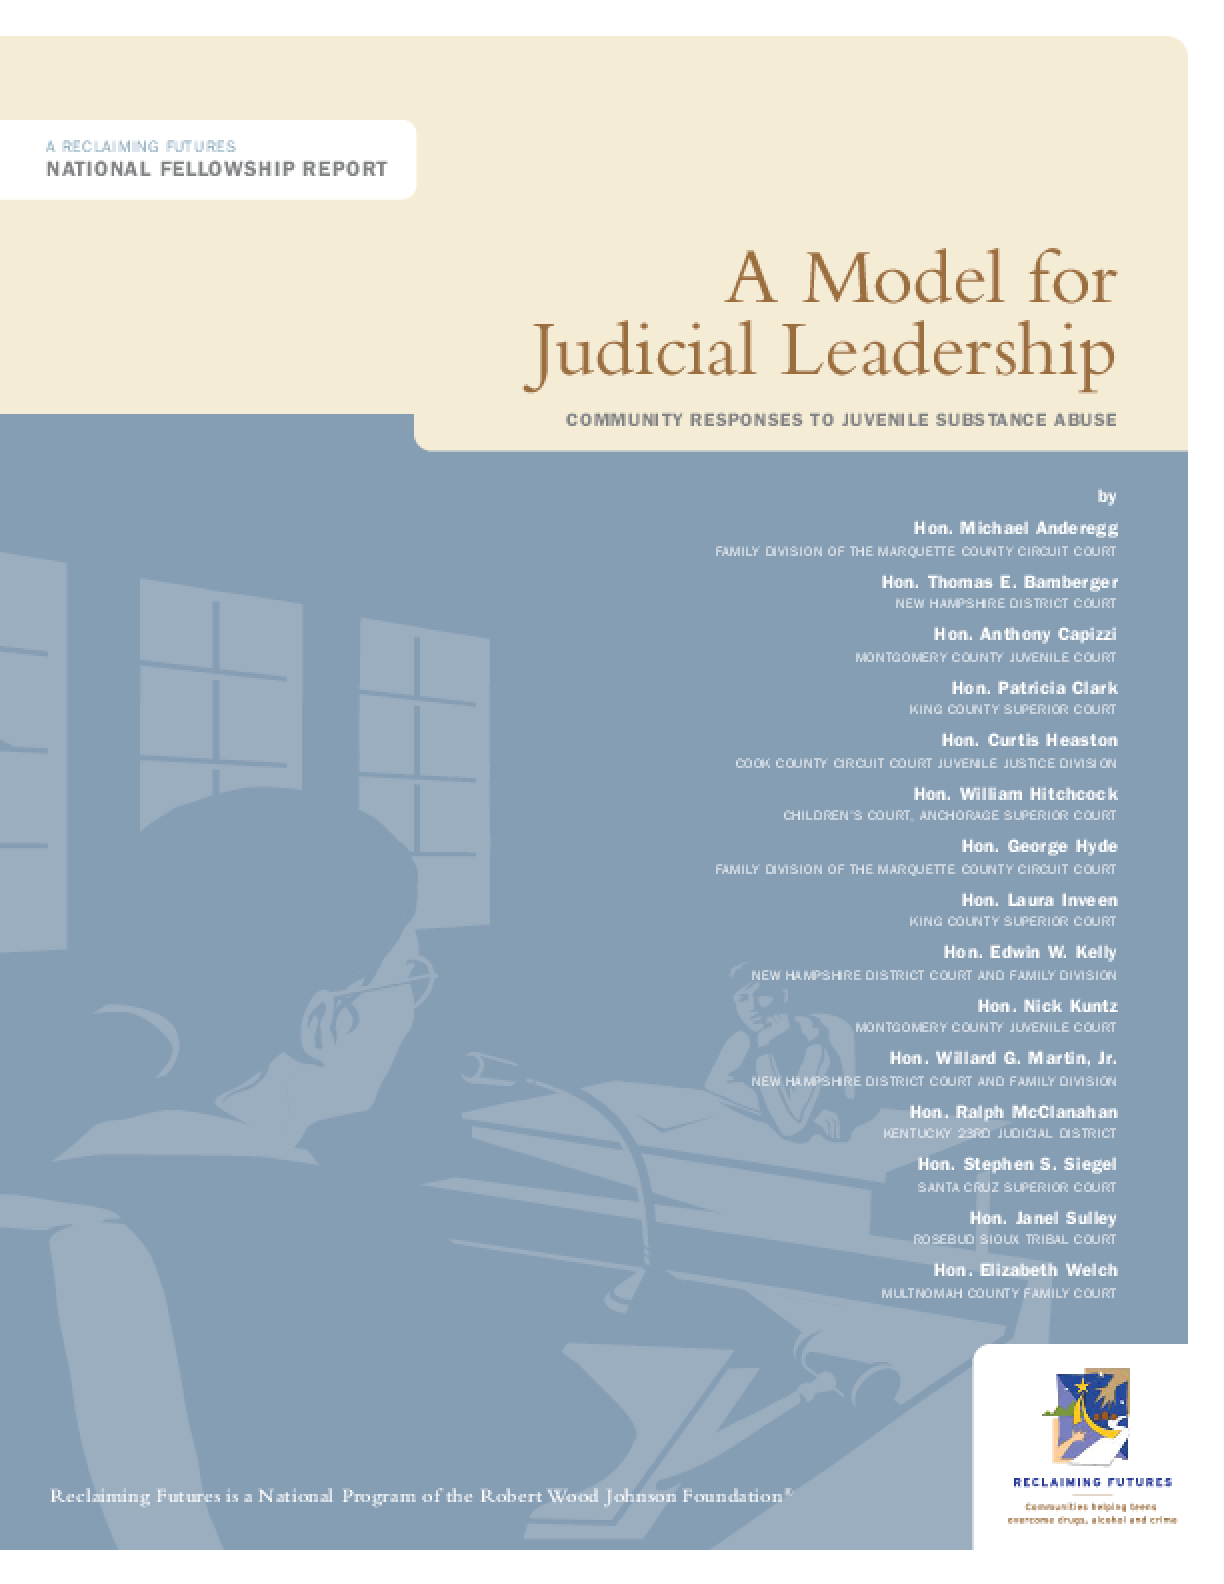 A Model for Judicial Leadership: Community Responses to Juvenile Substance Abuse